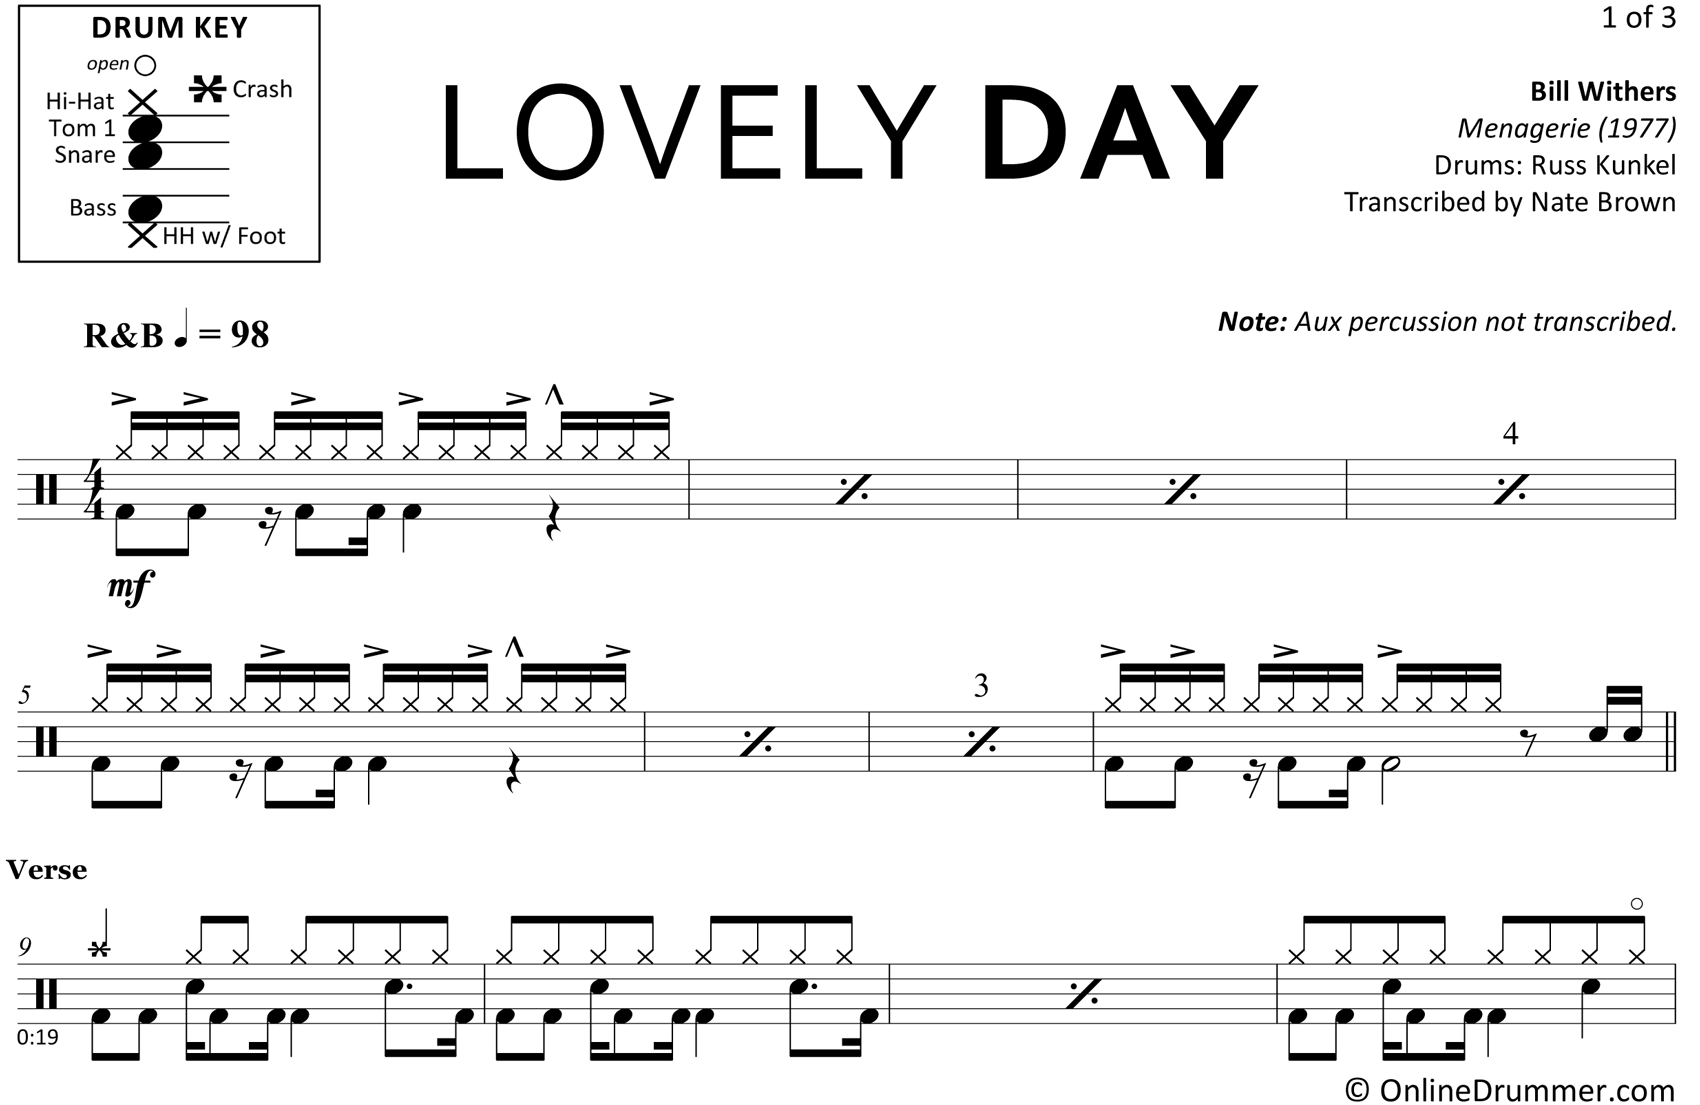 Lovely Day Bill Withers Drum Sheet Music Onlinedrummer Com Drum Sheet Music Sheet Music Drums Sheet